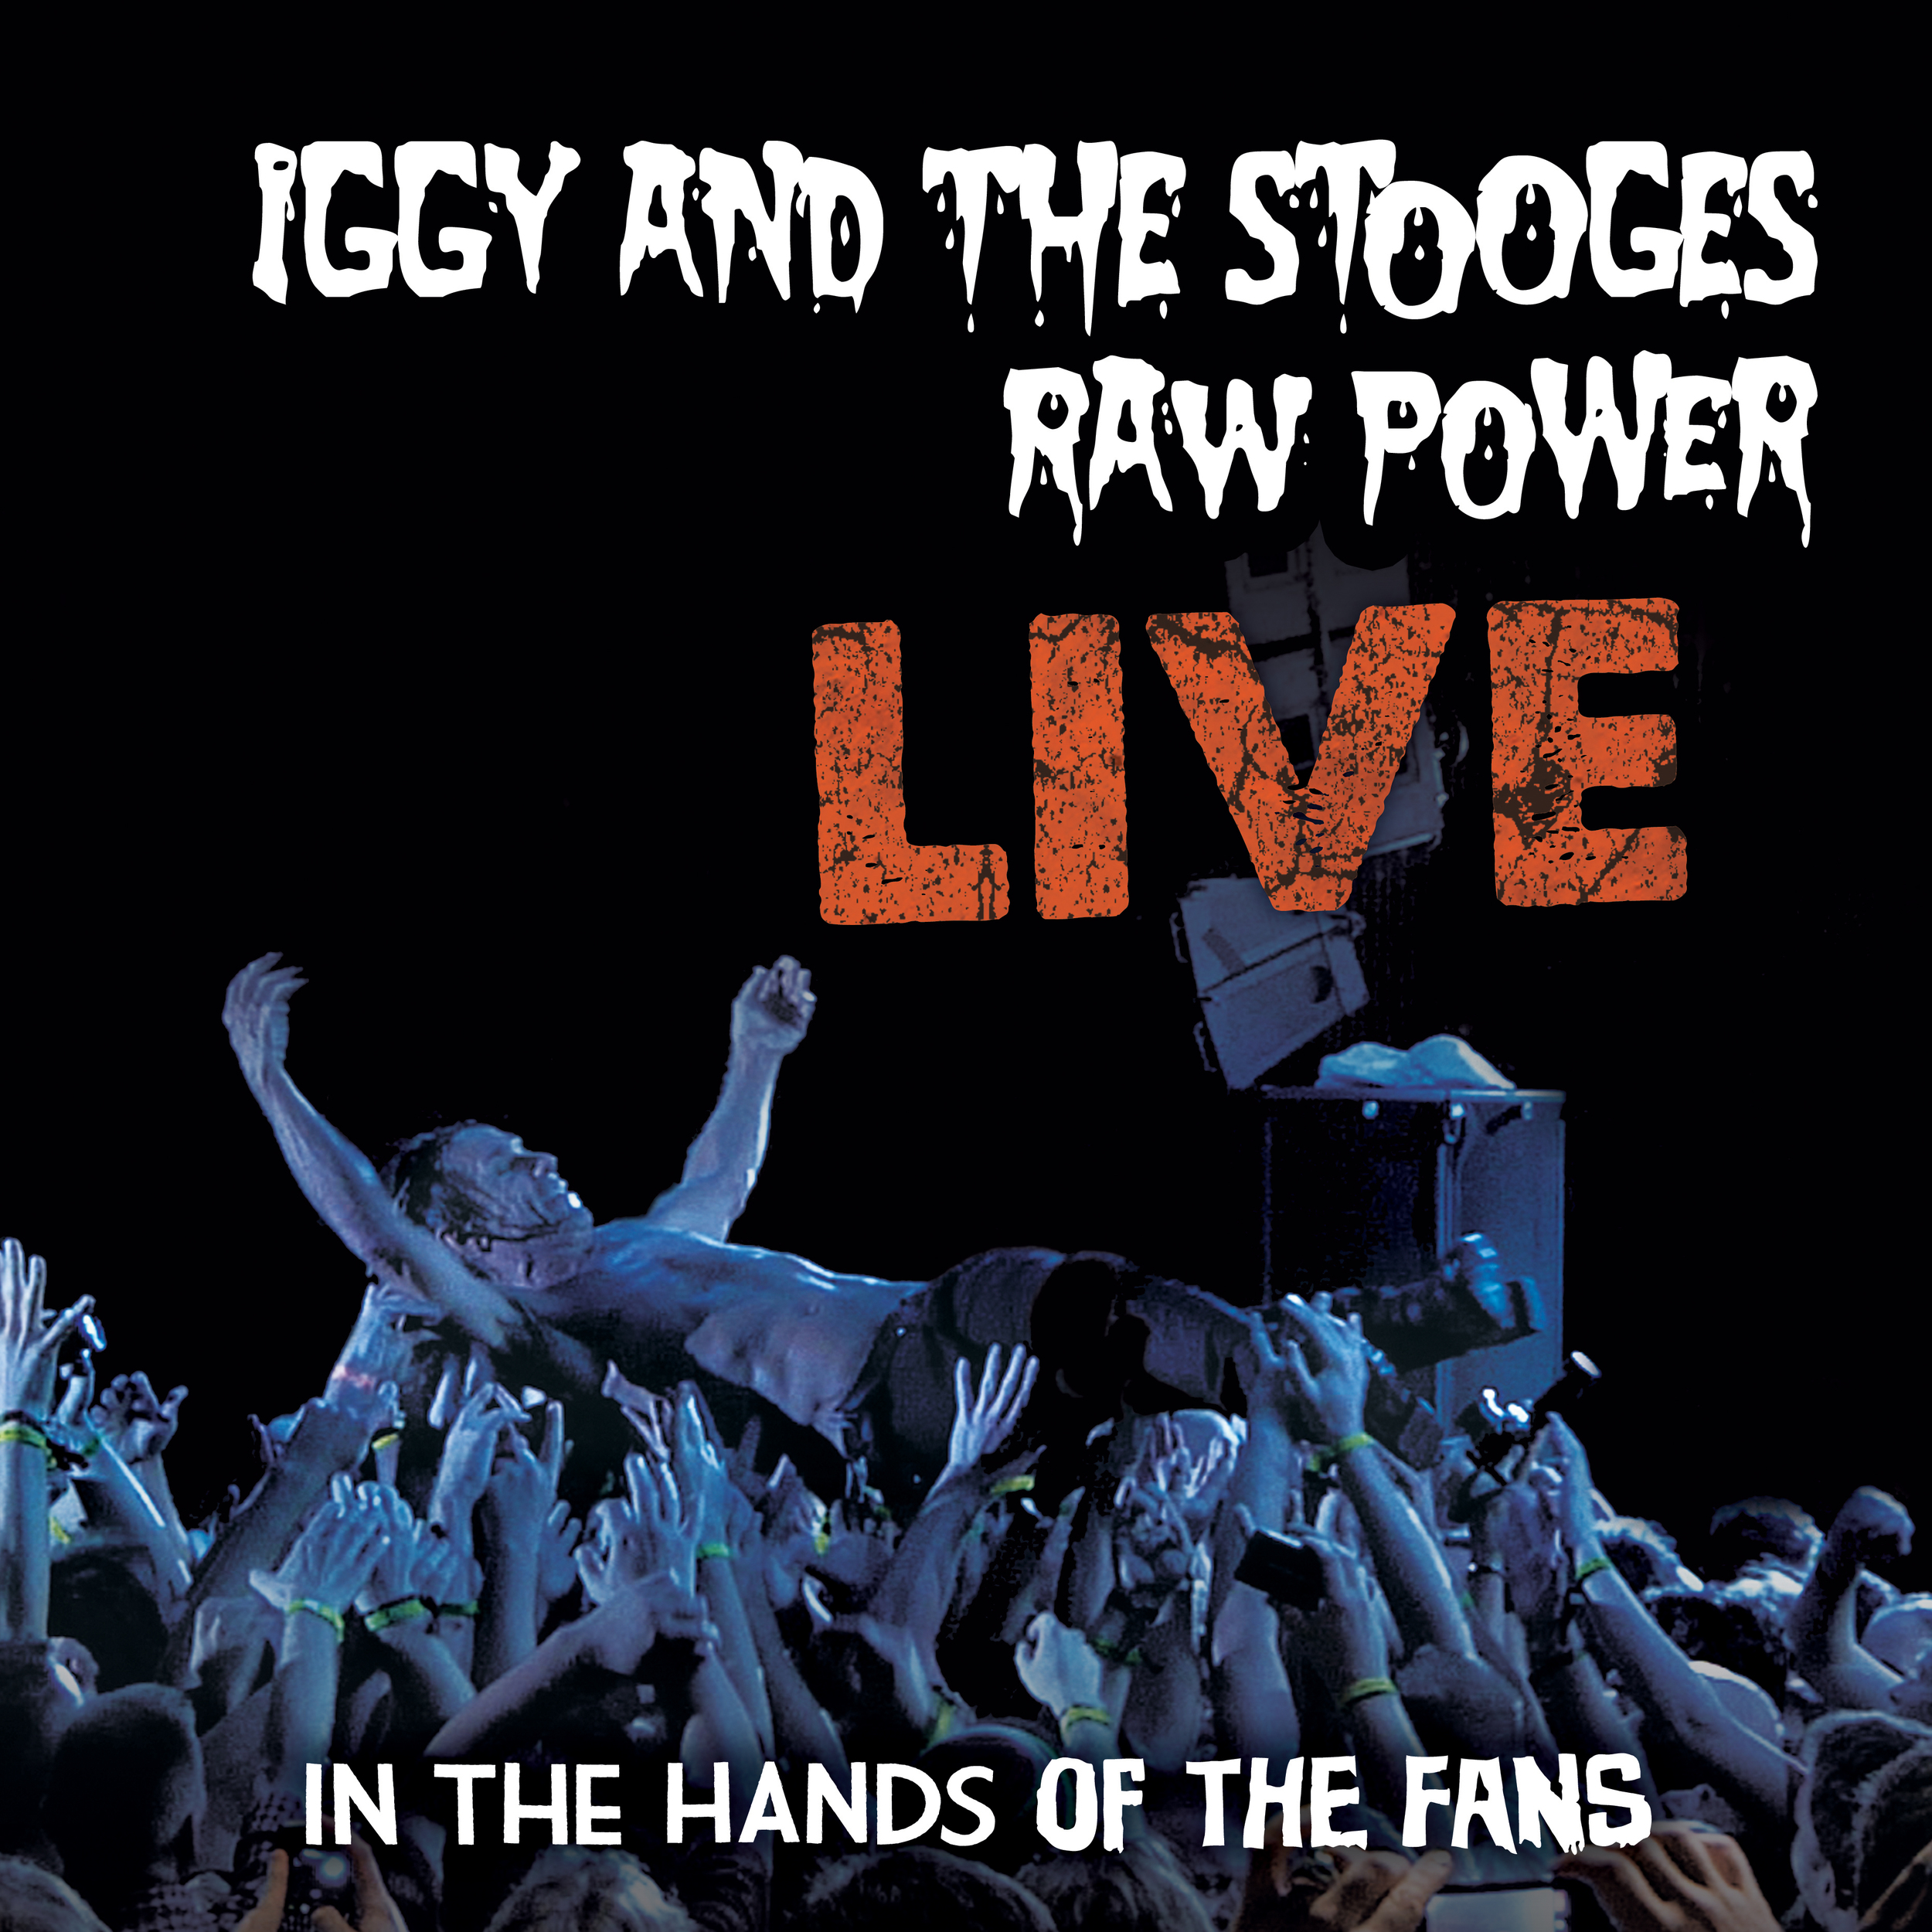 Iggy and the Stooges - Raw Power Live - Thumbnail.jpg